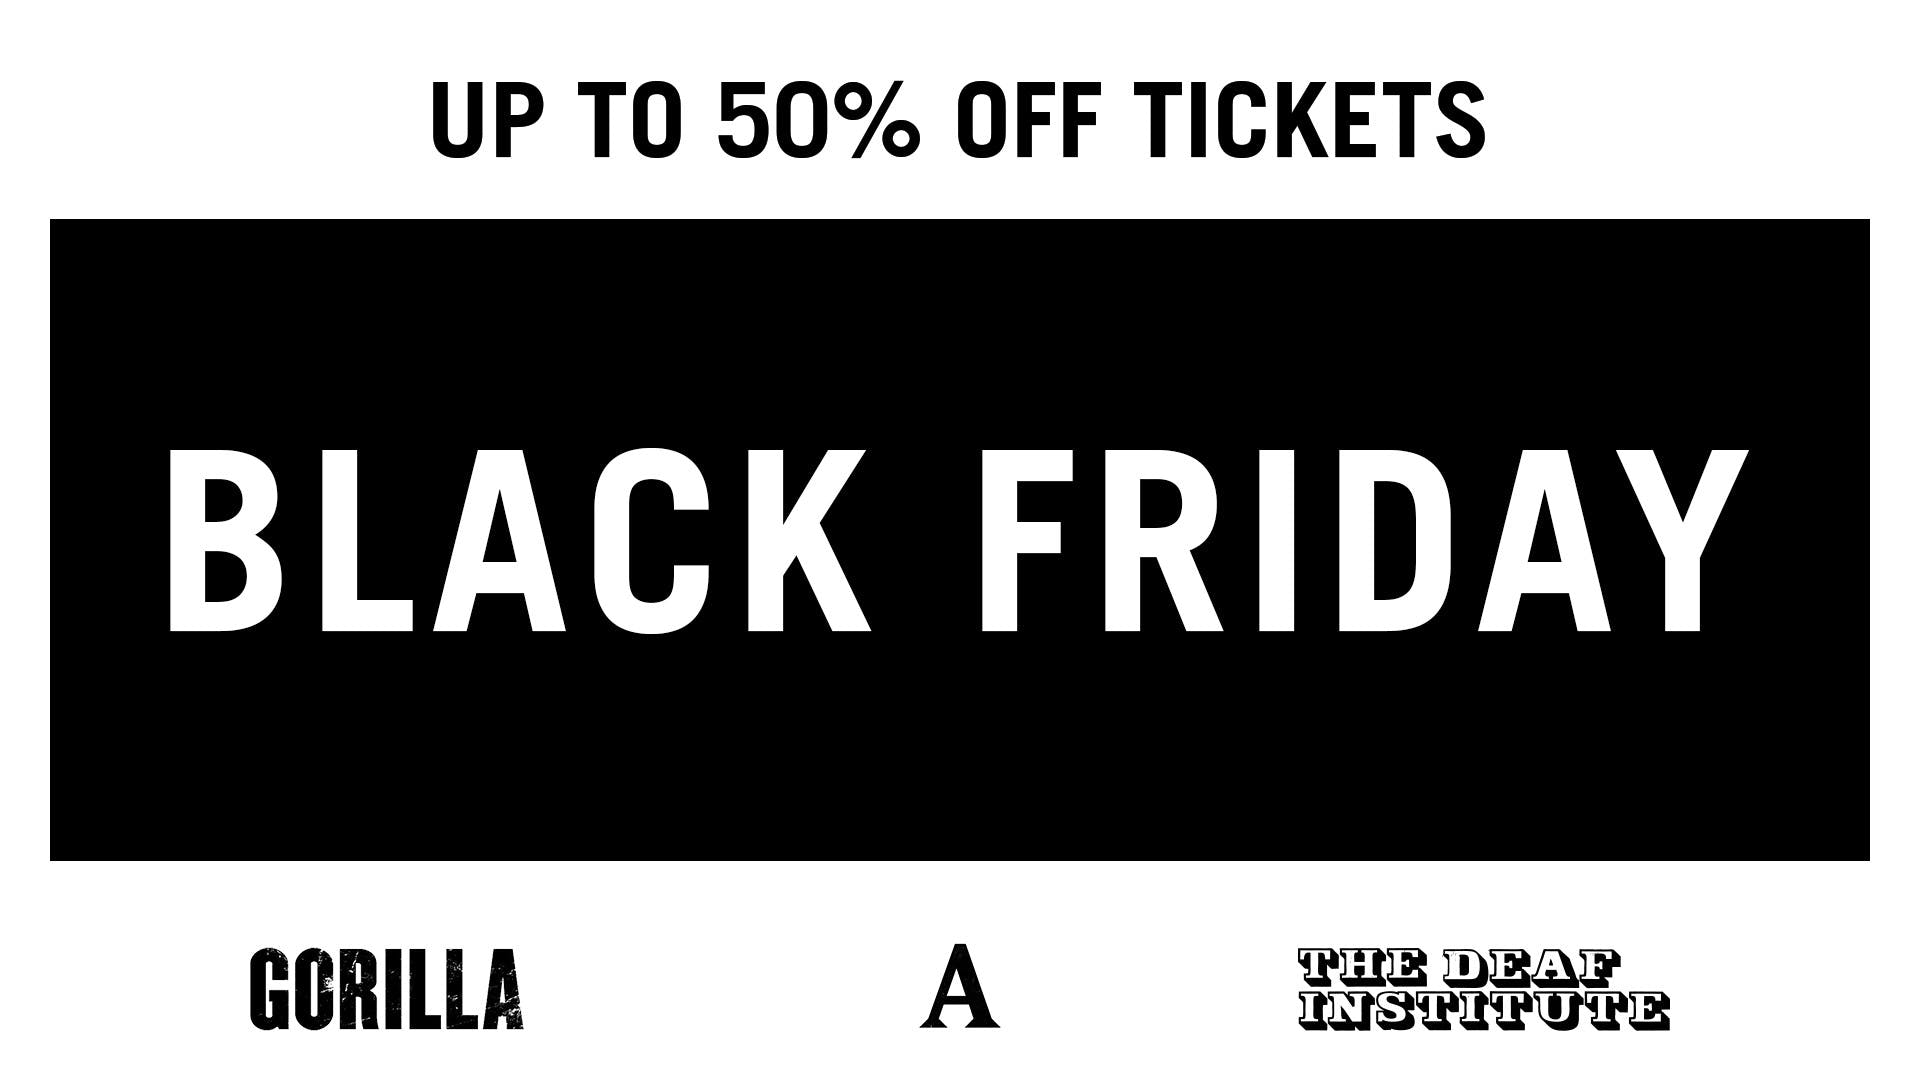 BLACK FRIDAY: UP TO 50% OFF